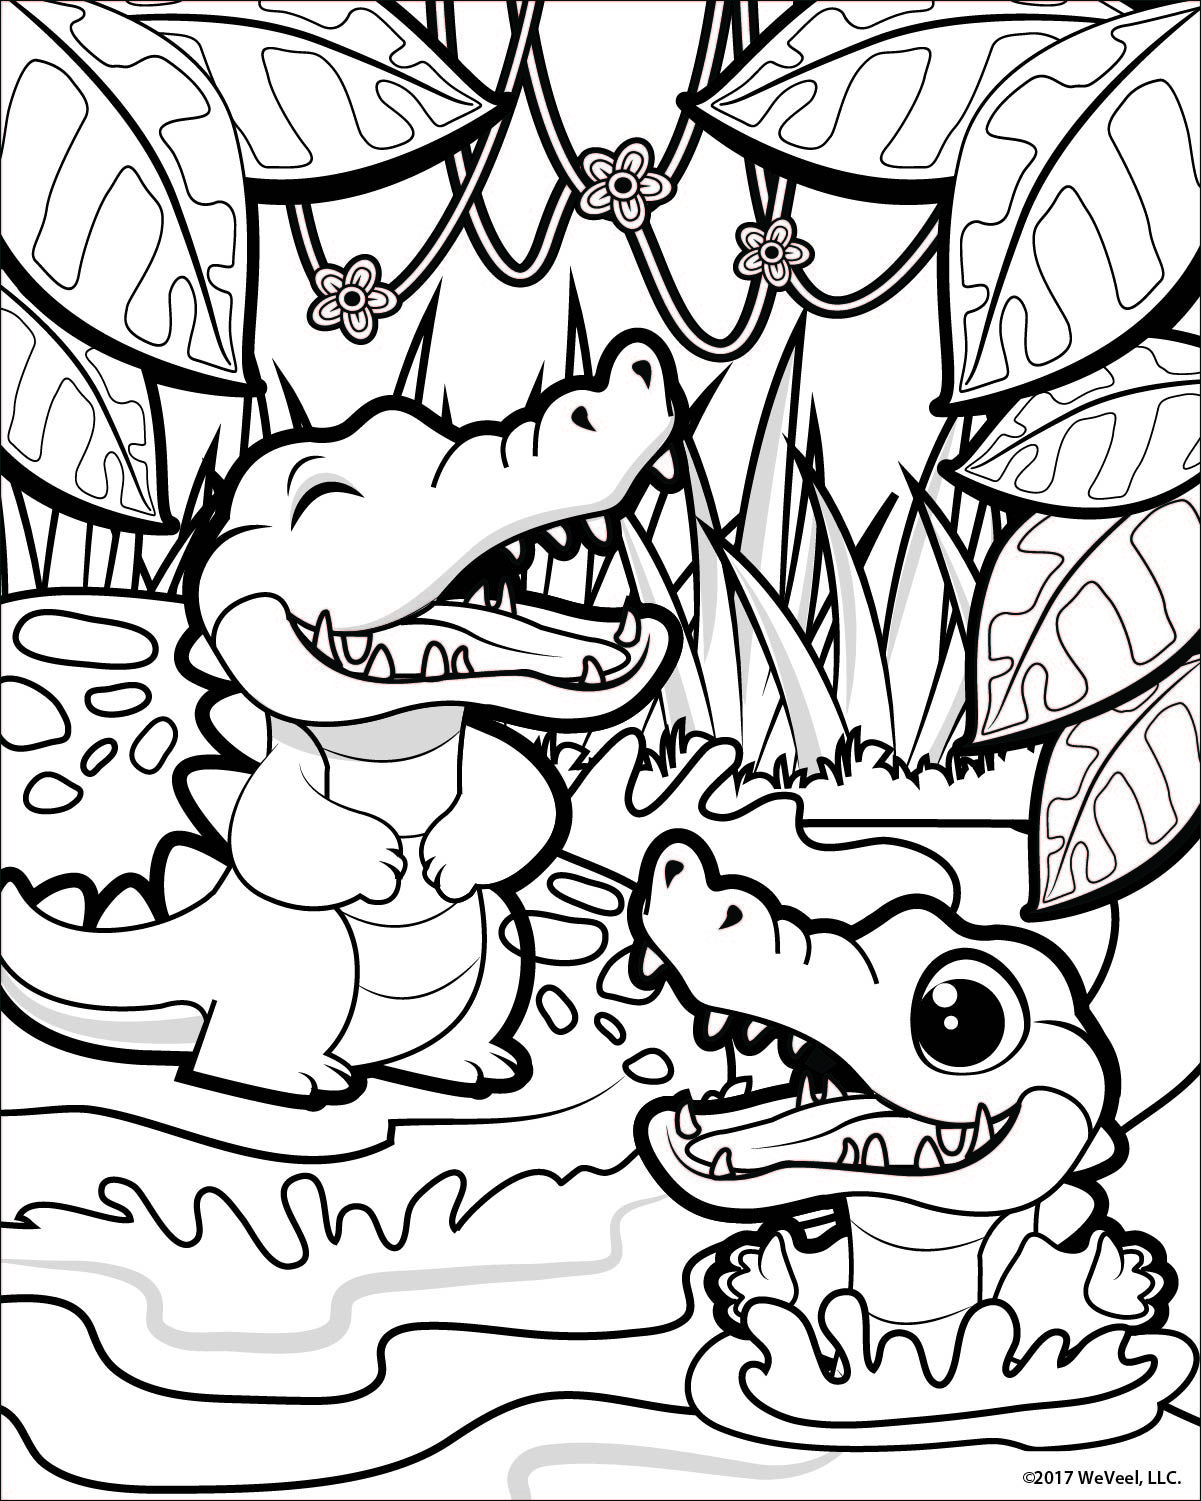 Coloring Pages Jungle Jungle Coloring Pages Zoo Coloring Pages Cute Coloring Pages